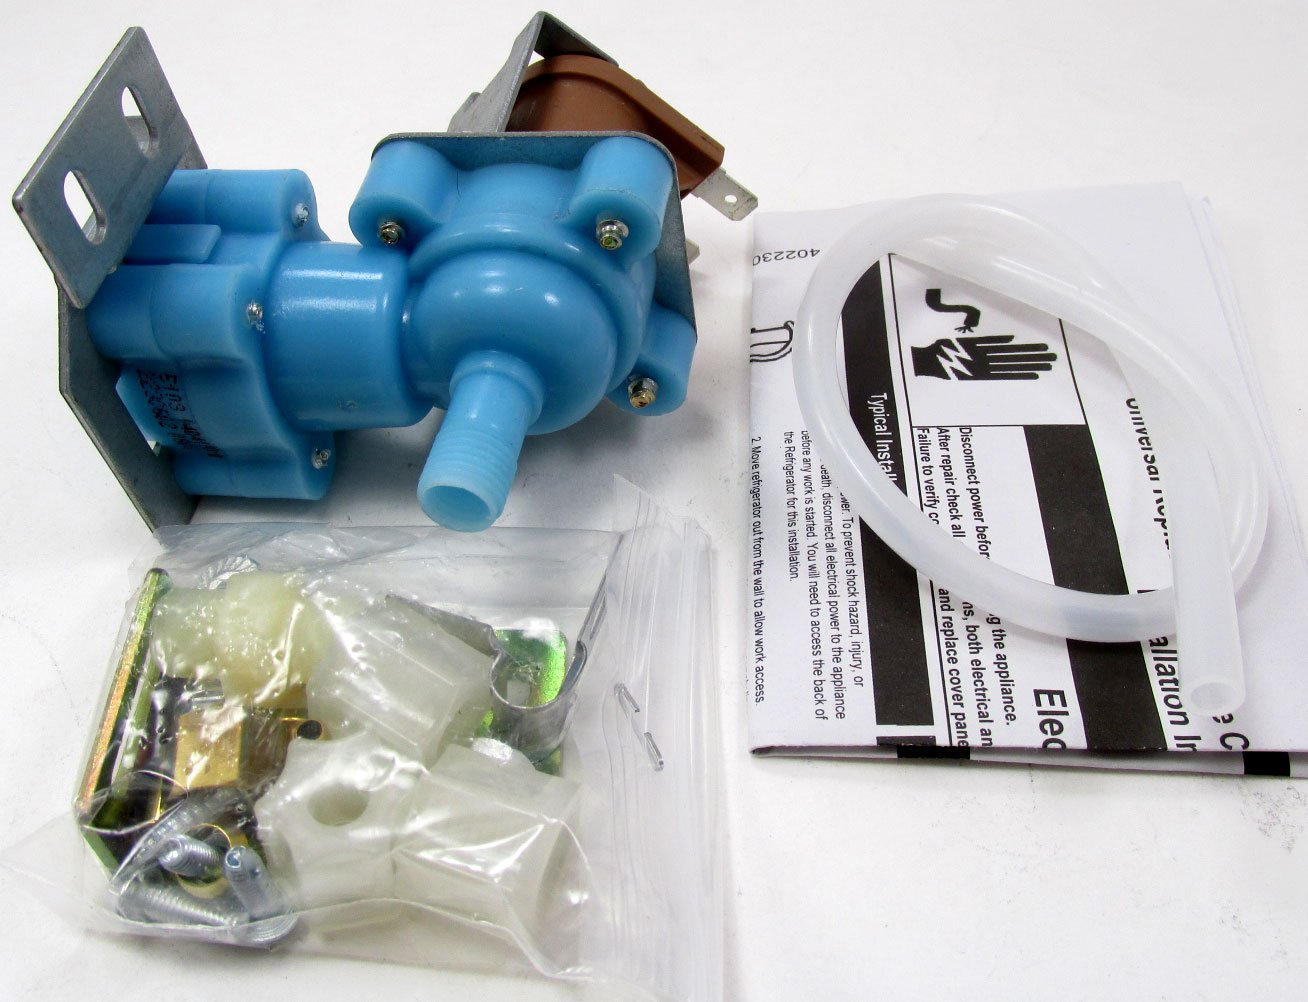 6-27461 - REFRIGERATOR SINGLE COIL ICEMAKER WATER VALVE KIT FOR ALL BRANDS